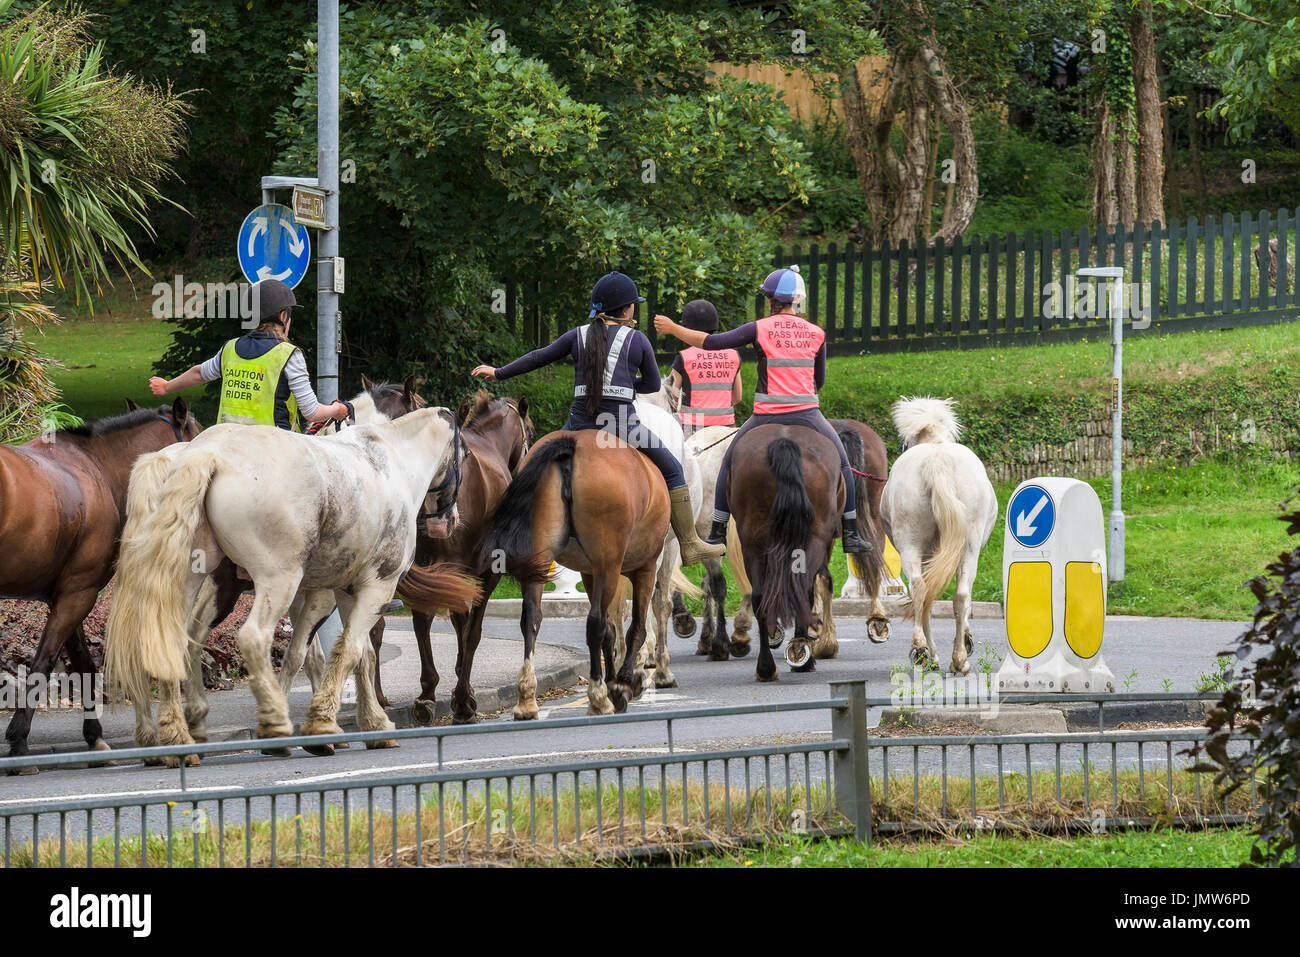 Horse riders riding on public roads. - Stock Image